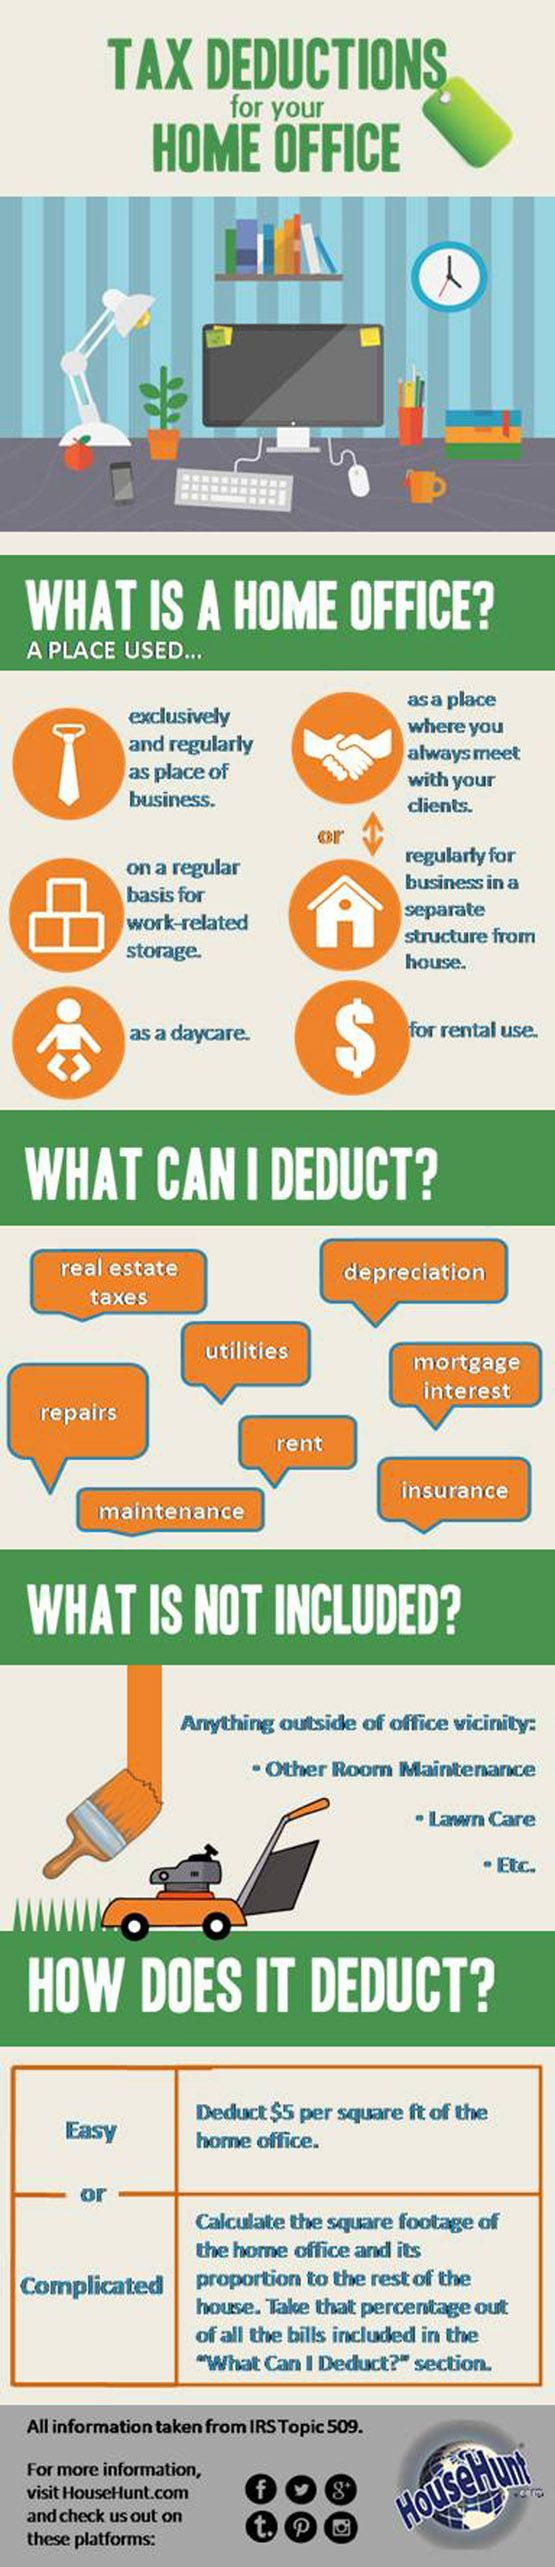 Tax Deductions for a Home Office #Infographic Visit our website at http://memorizationtechniquess.blogspot.com/